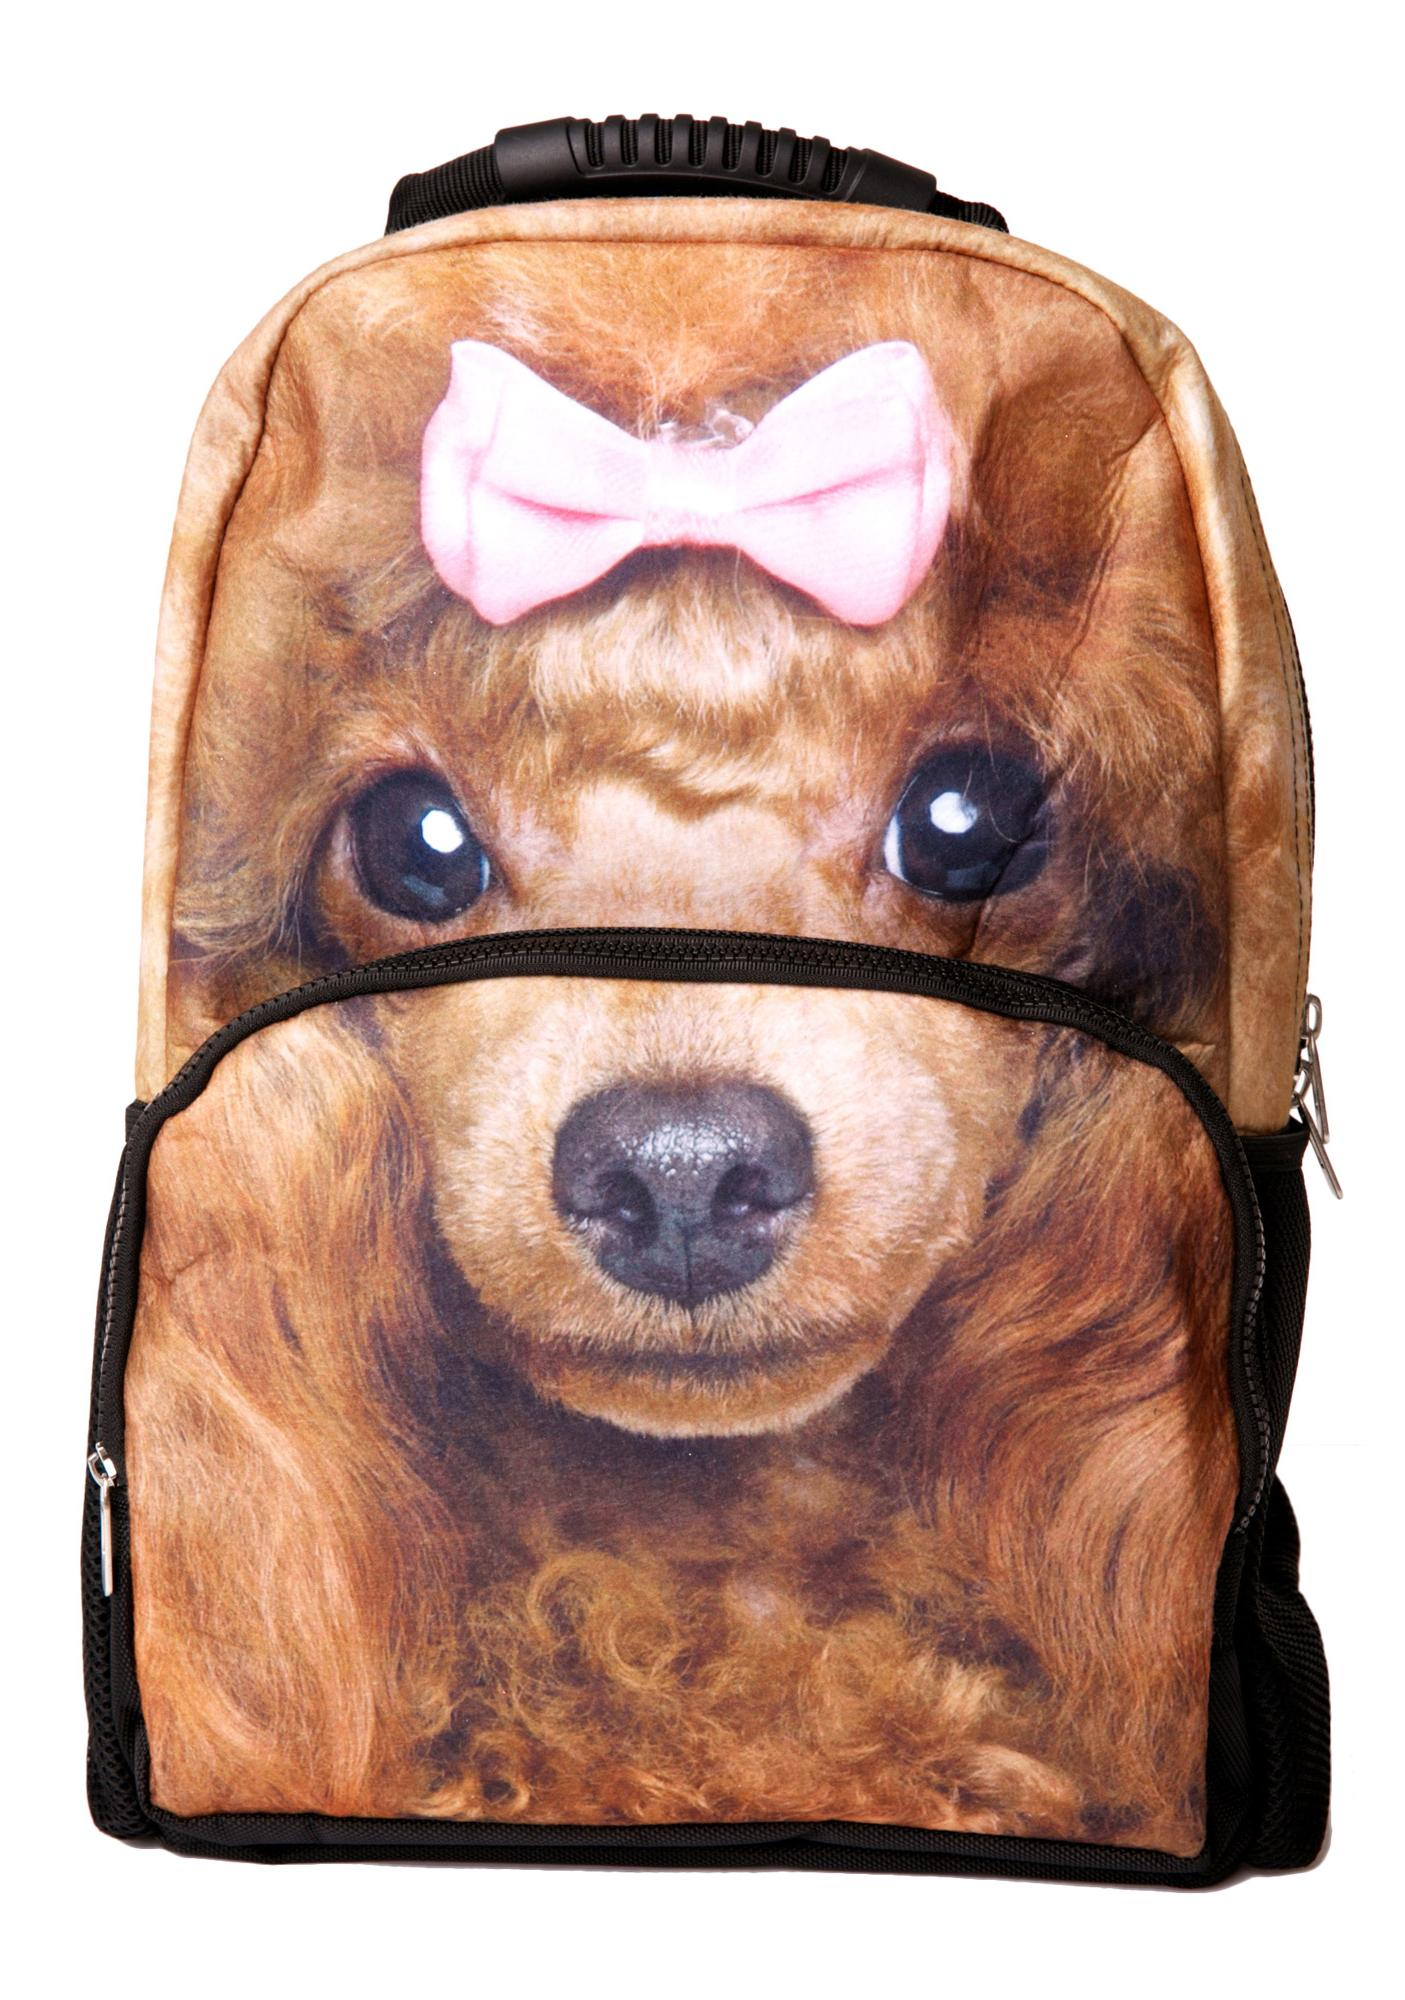 Poodlin' Around Backpack